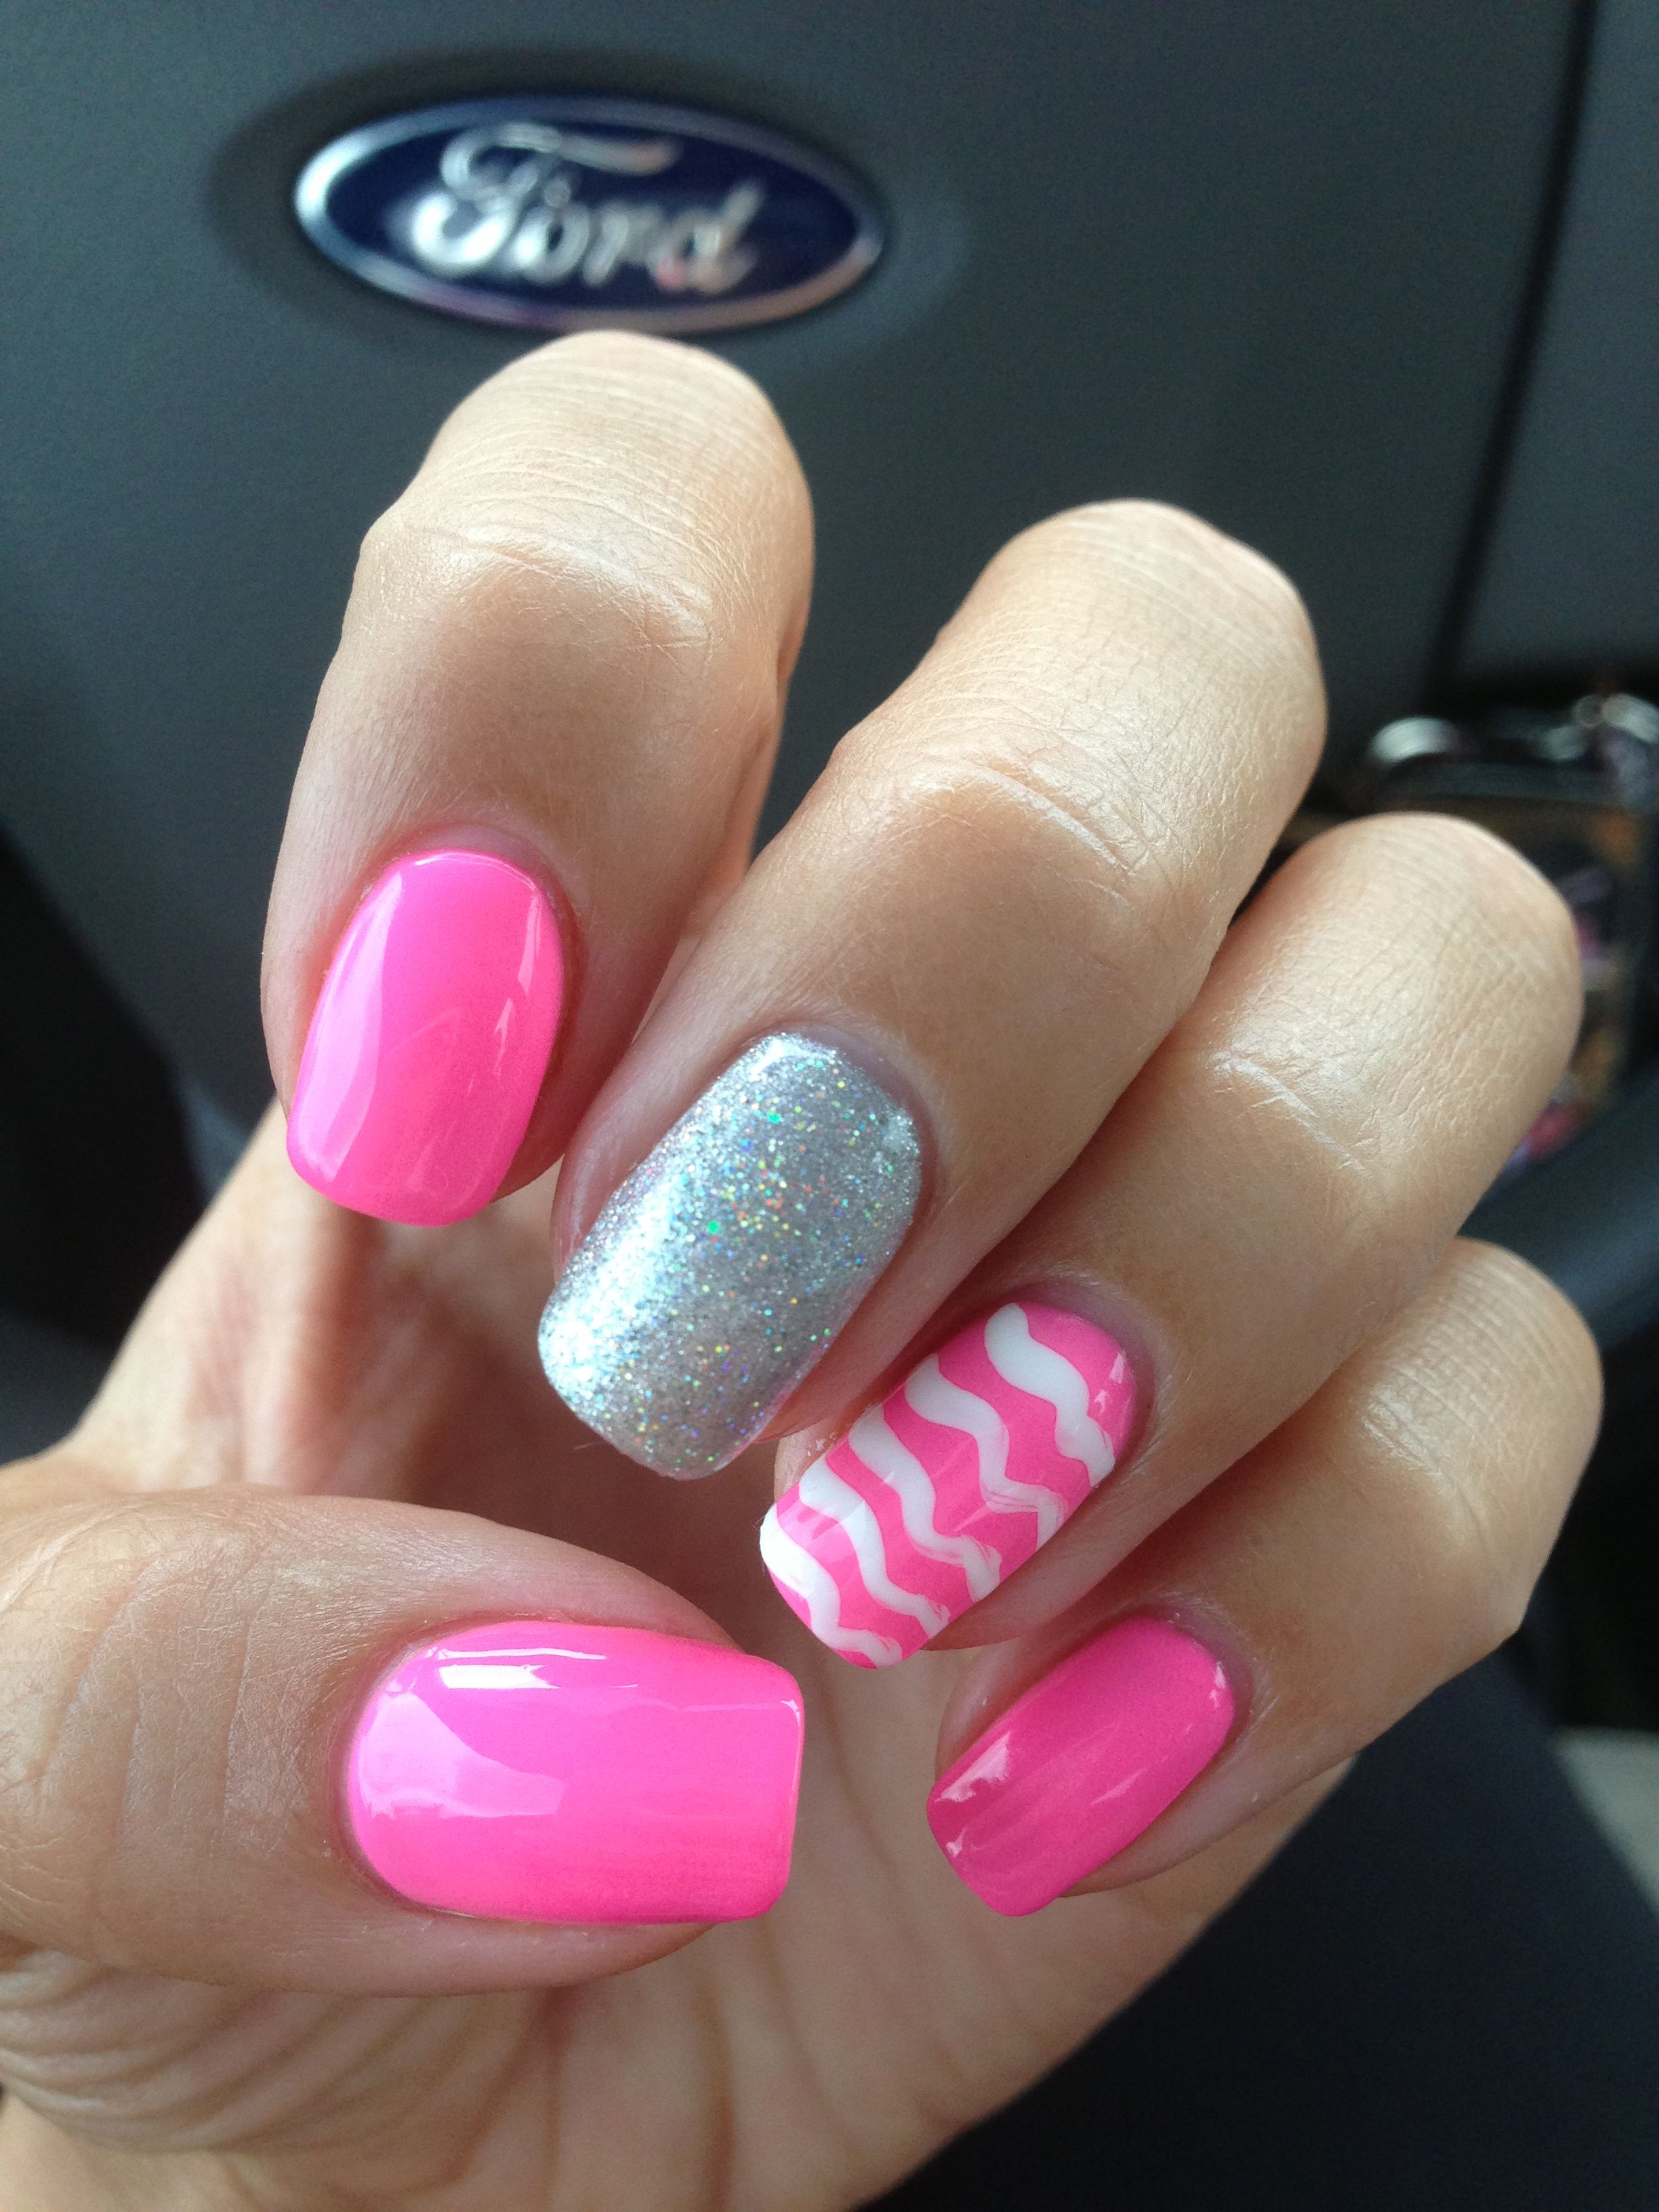 My pink, sparkle, and chevron, shellac nails!